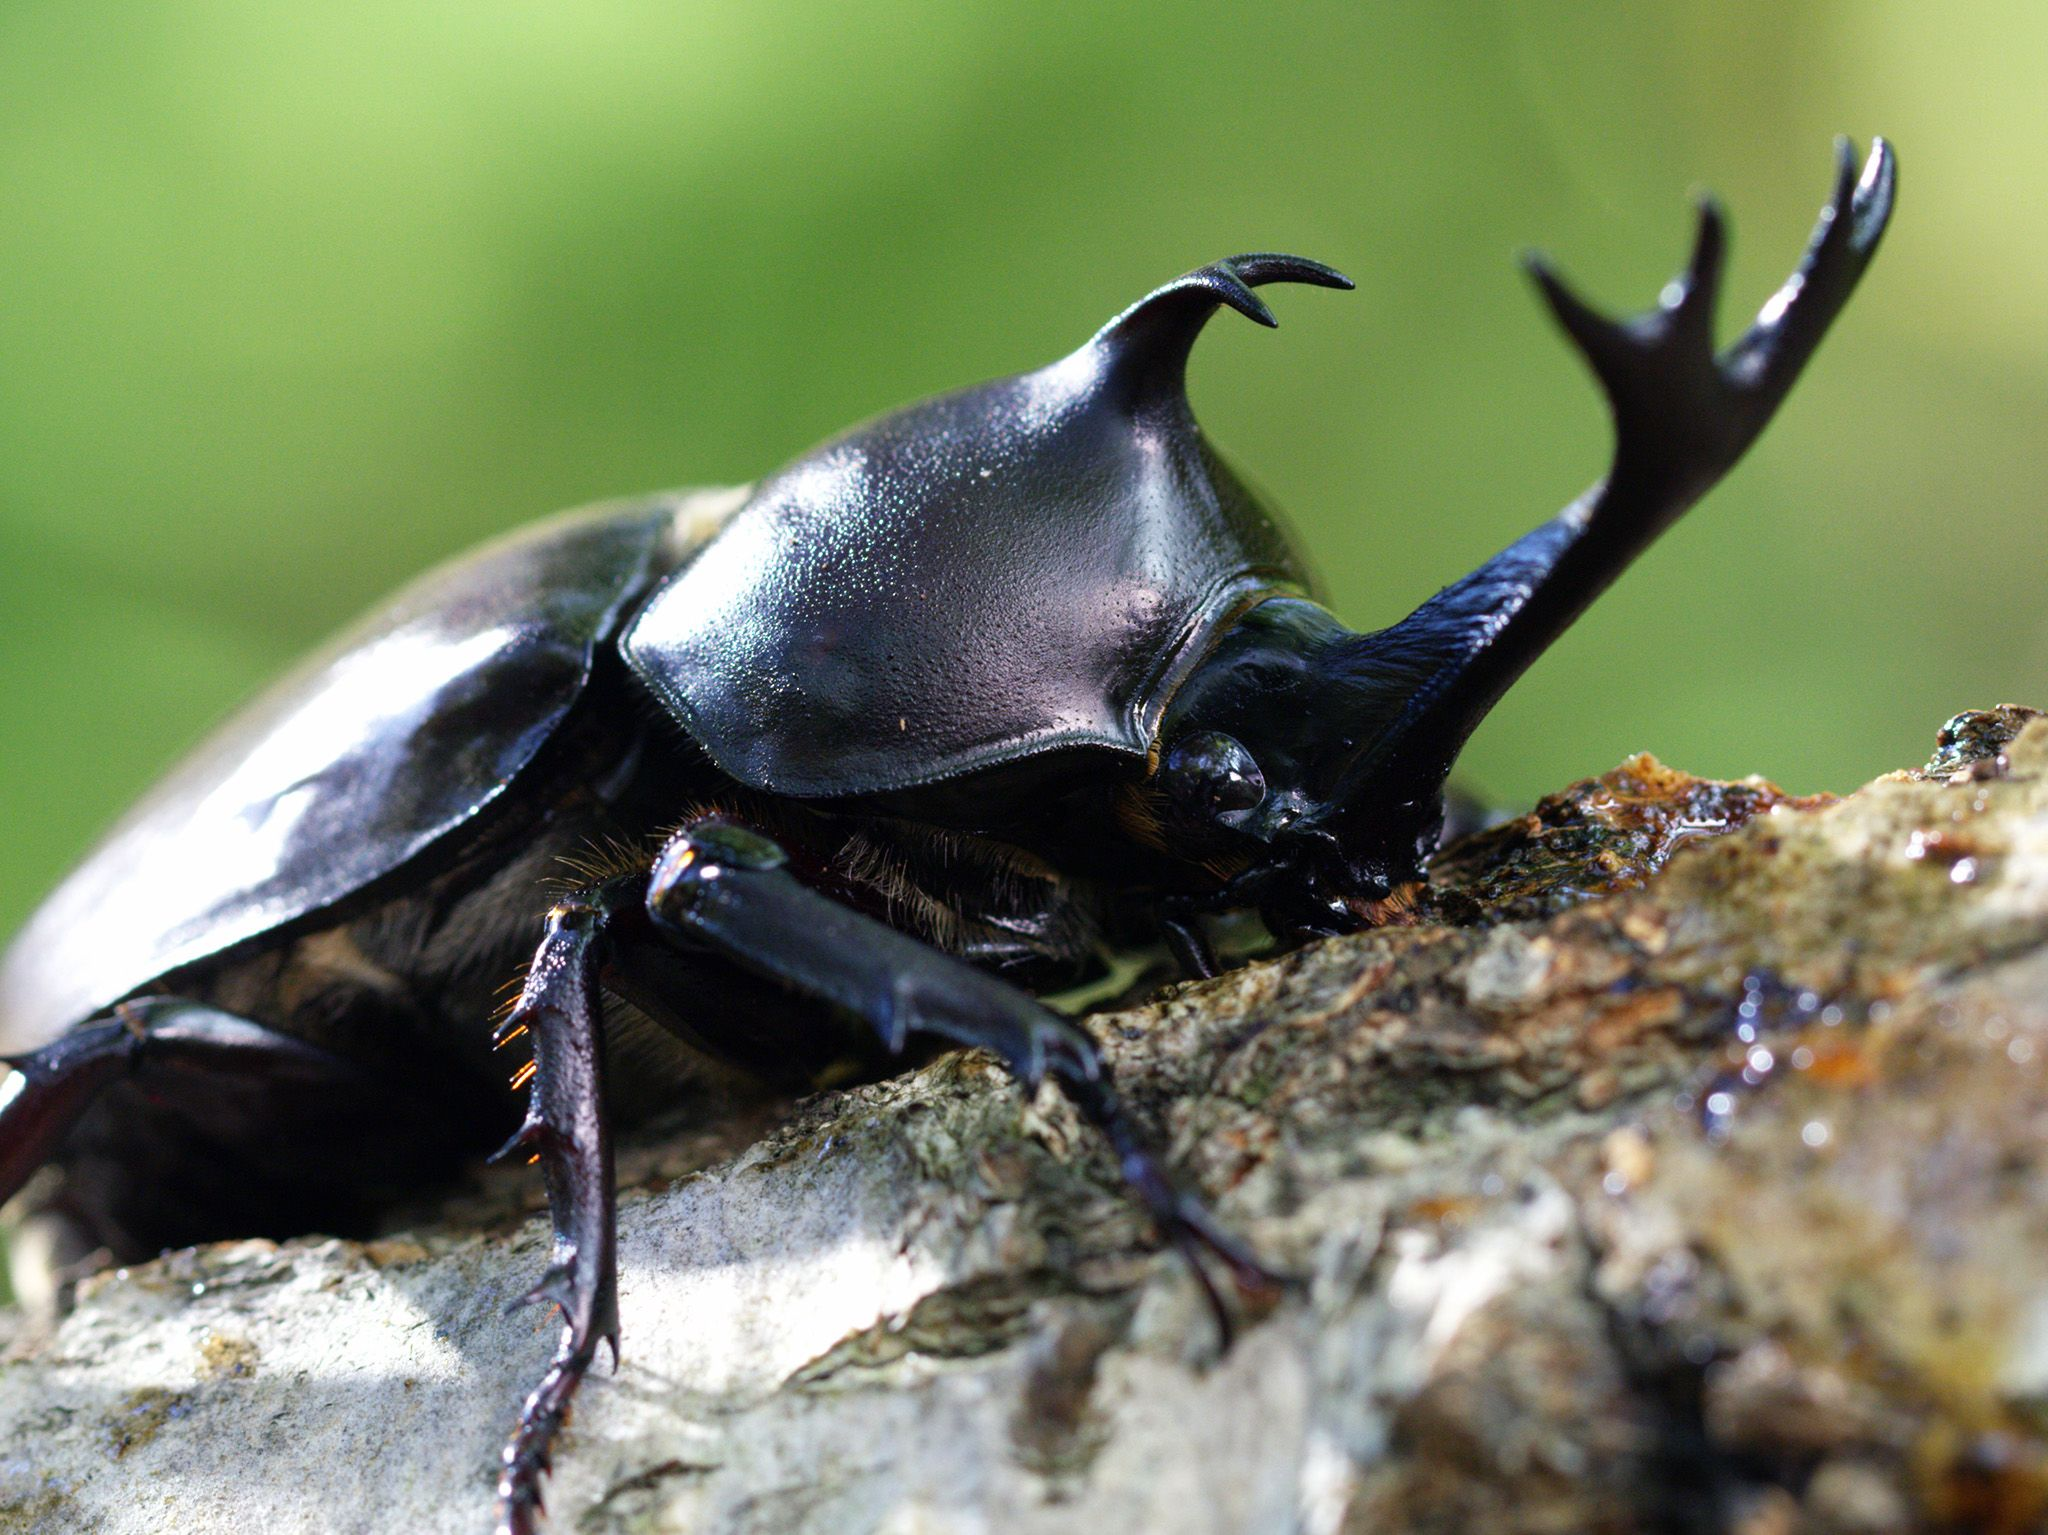 Korea:  Male Rhinoceros beetle. This image is from Wild Korea. [Photo of the day - January 2019]